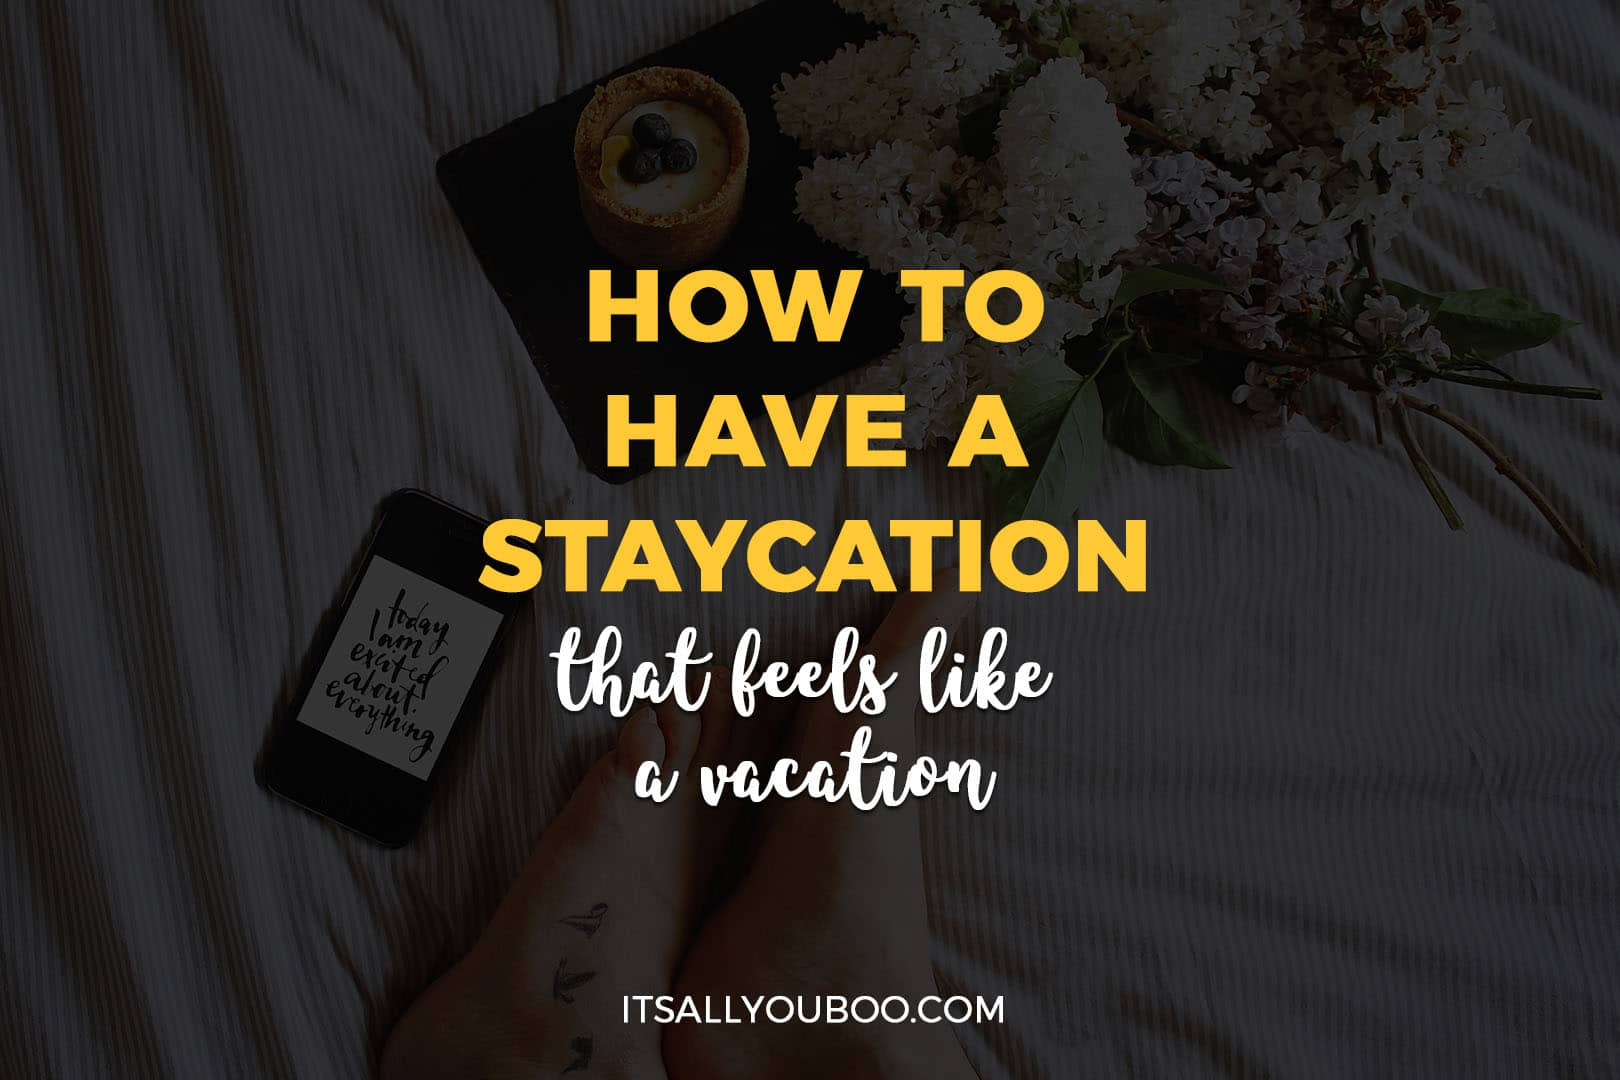 How to Have a Staycation that Feels Like a Vacation